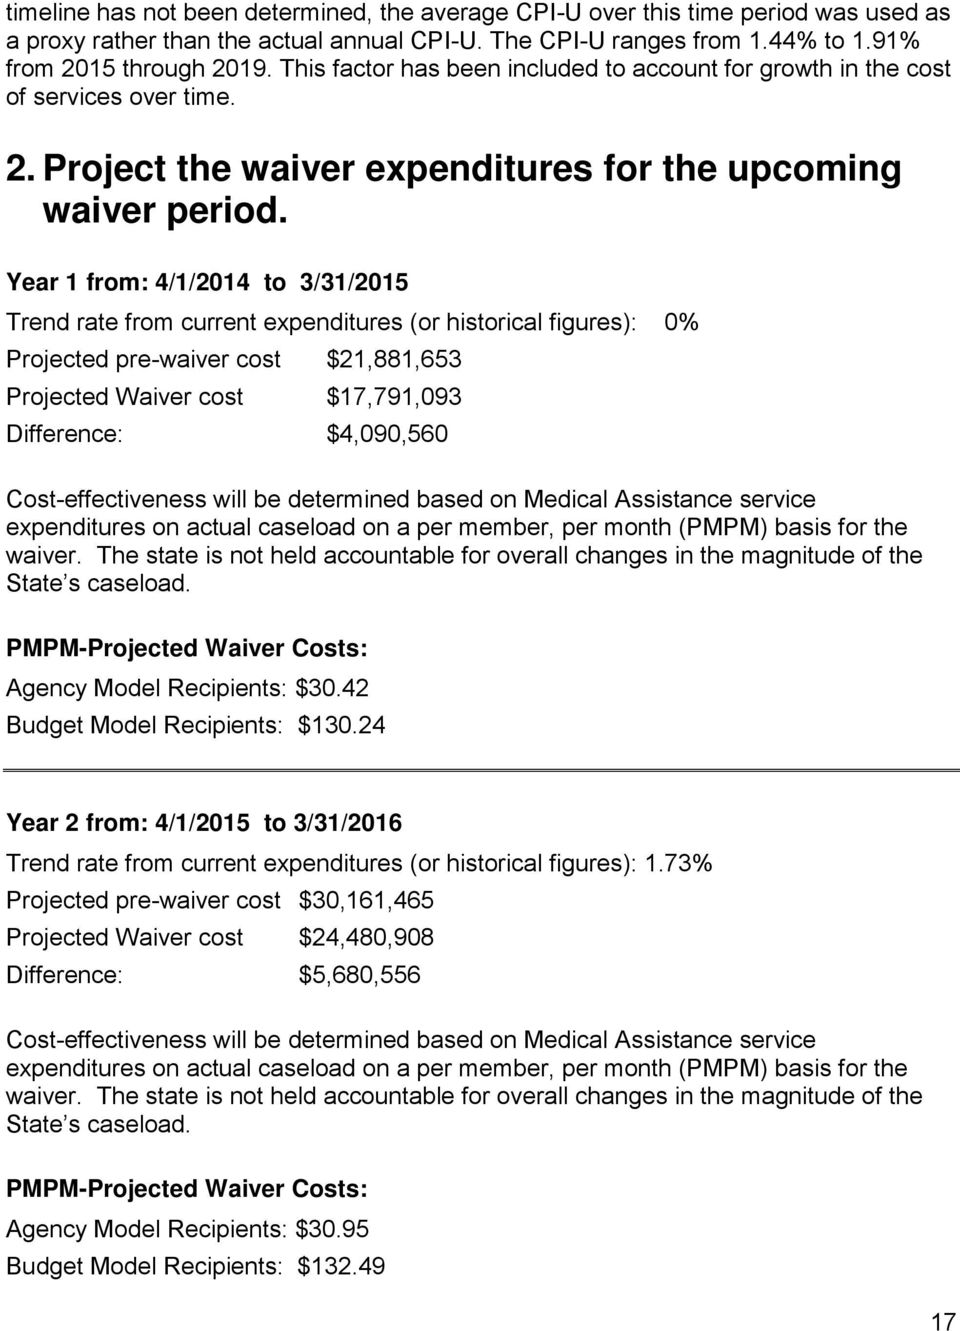 Year 1 from: 4/1/2014 to 3/31/2015 Trend rate from current expenditures (or historical figures): 0% Projected pre-waiver cost $21,881,653 Projected Waiver cost $17,791,093 Difference: $4,090,560